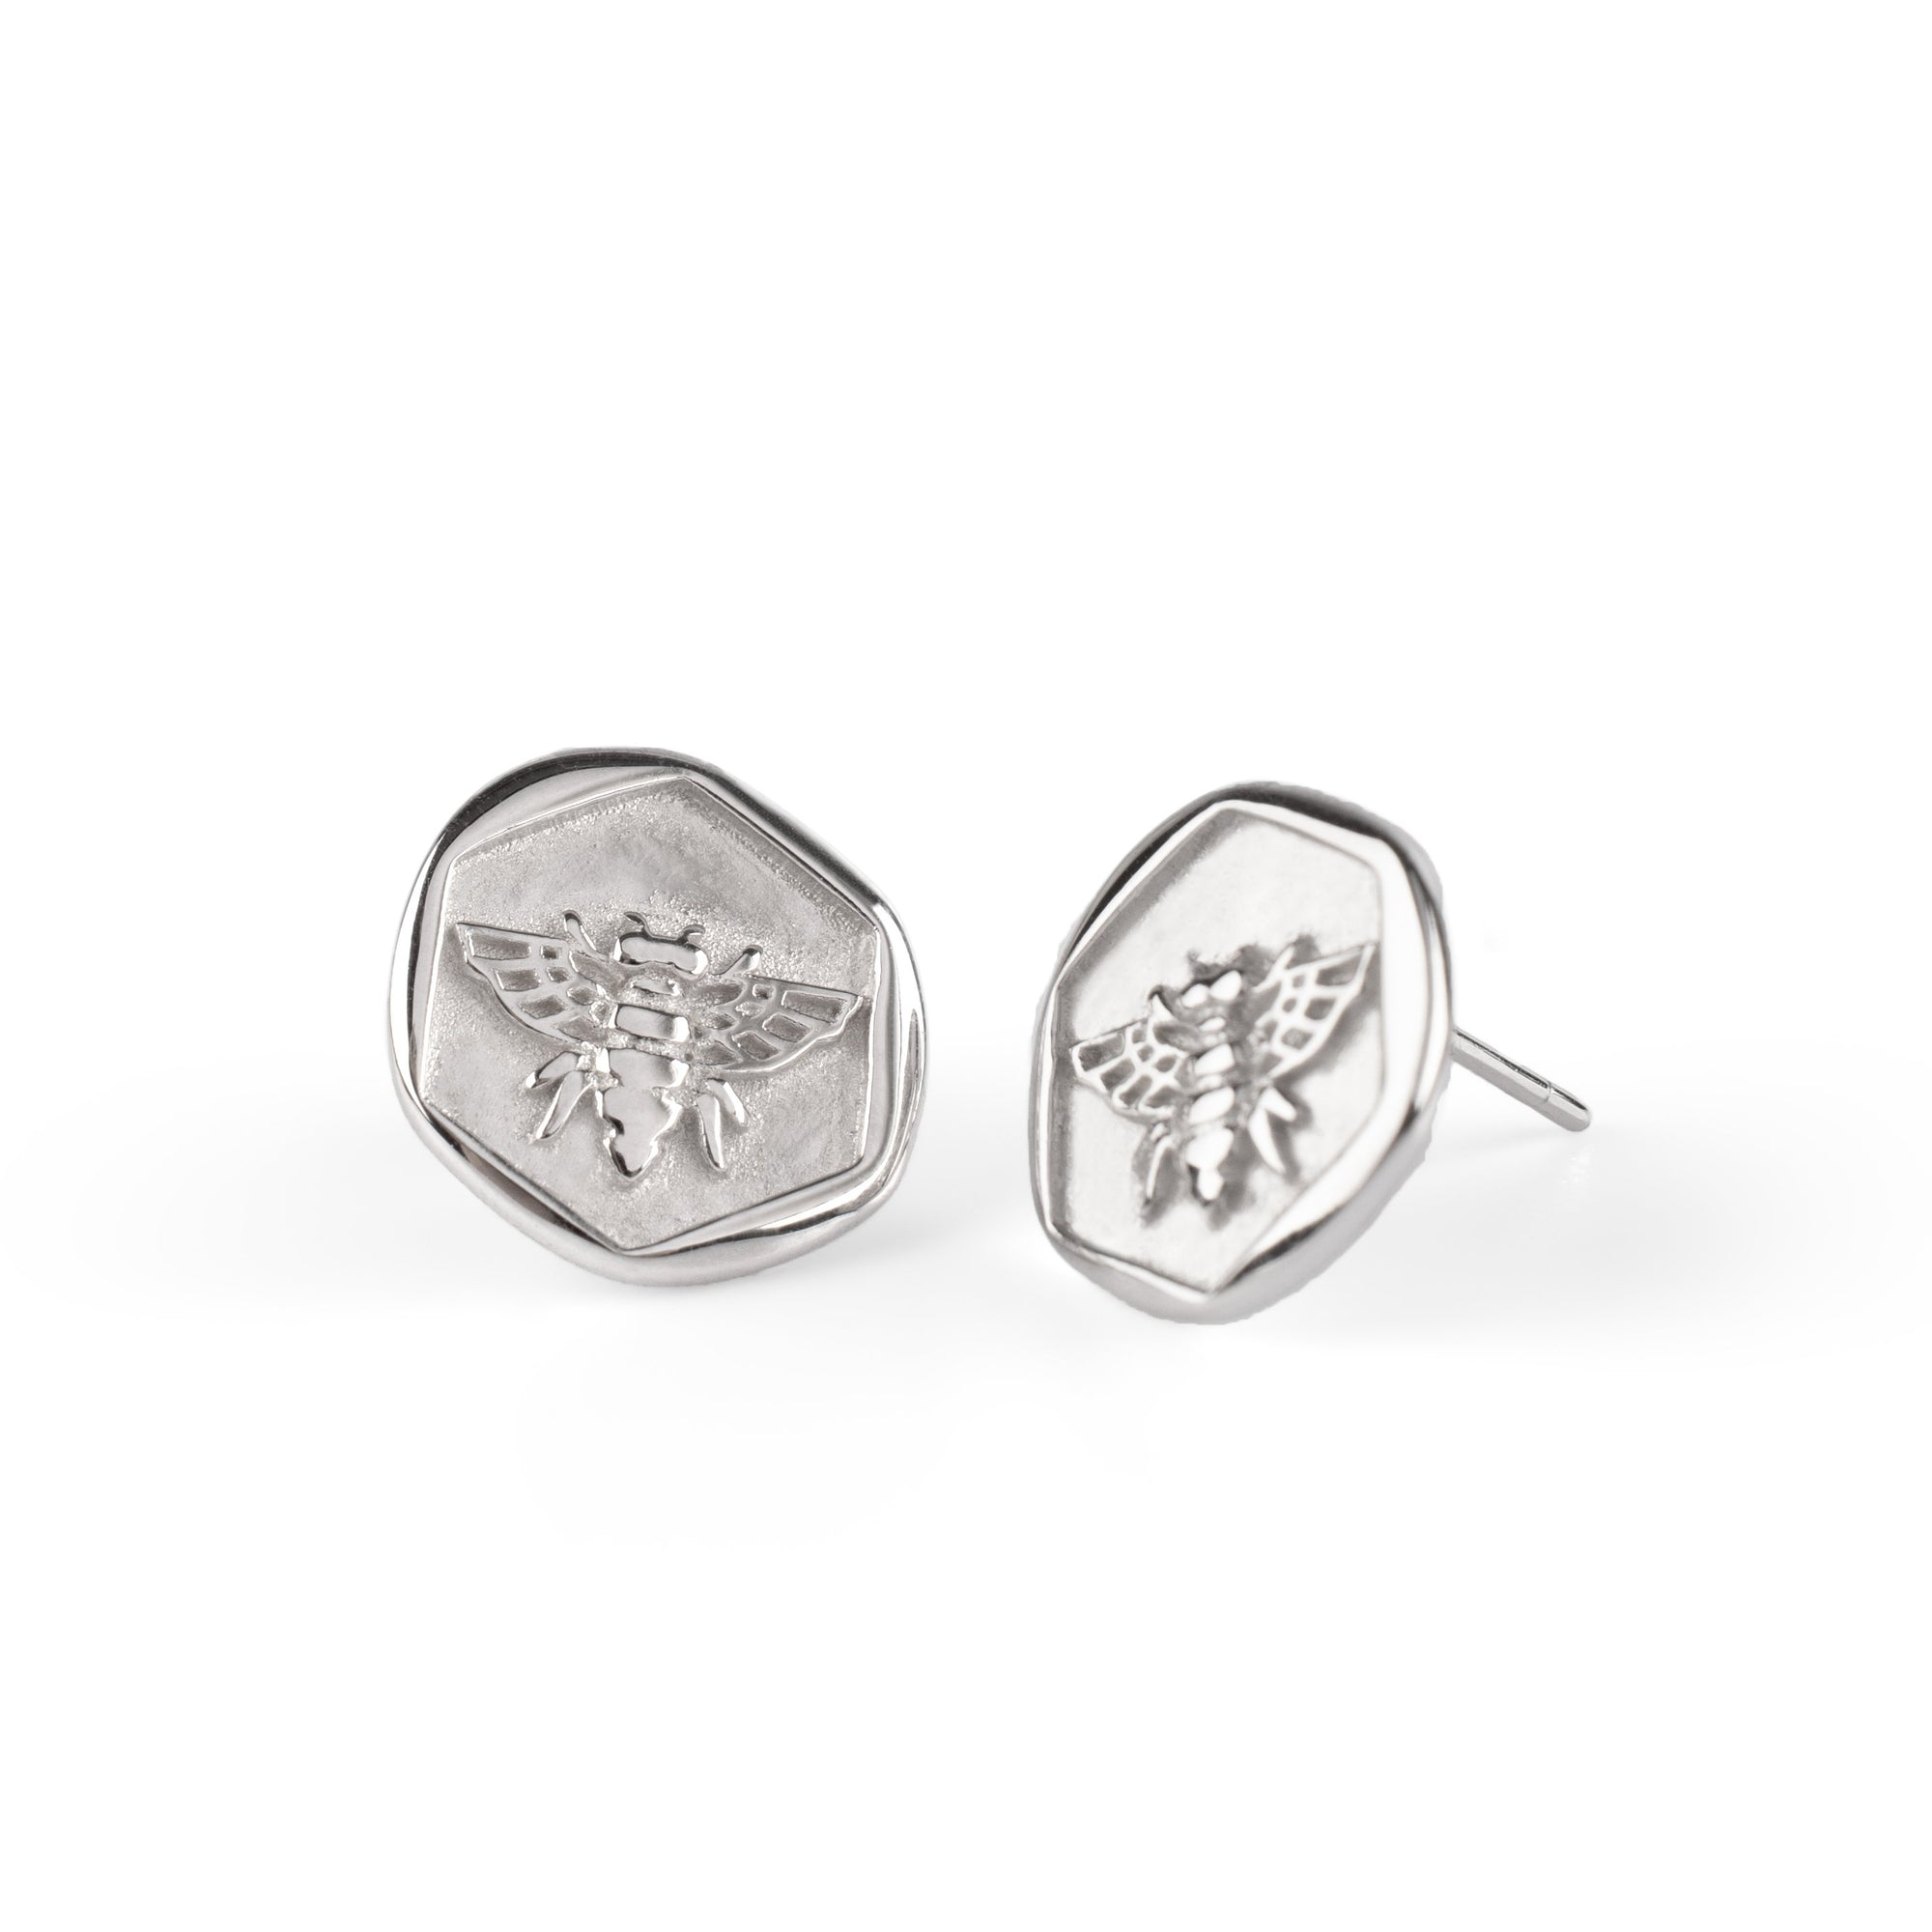 Honeybee Earrings Silber - Wildflowers